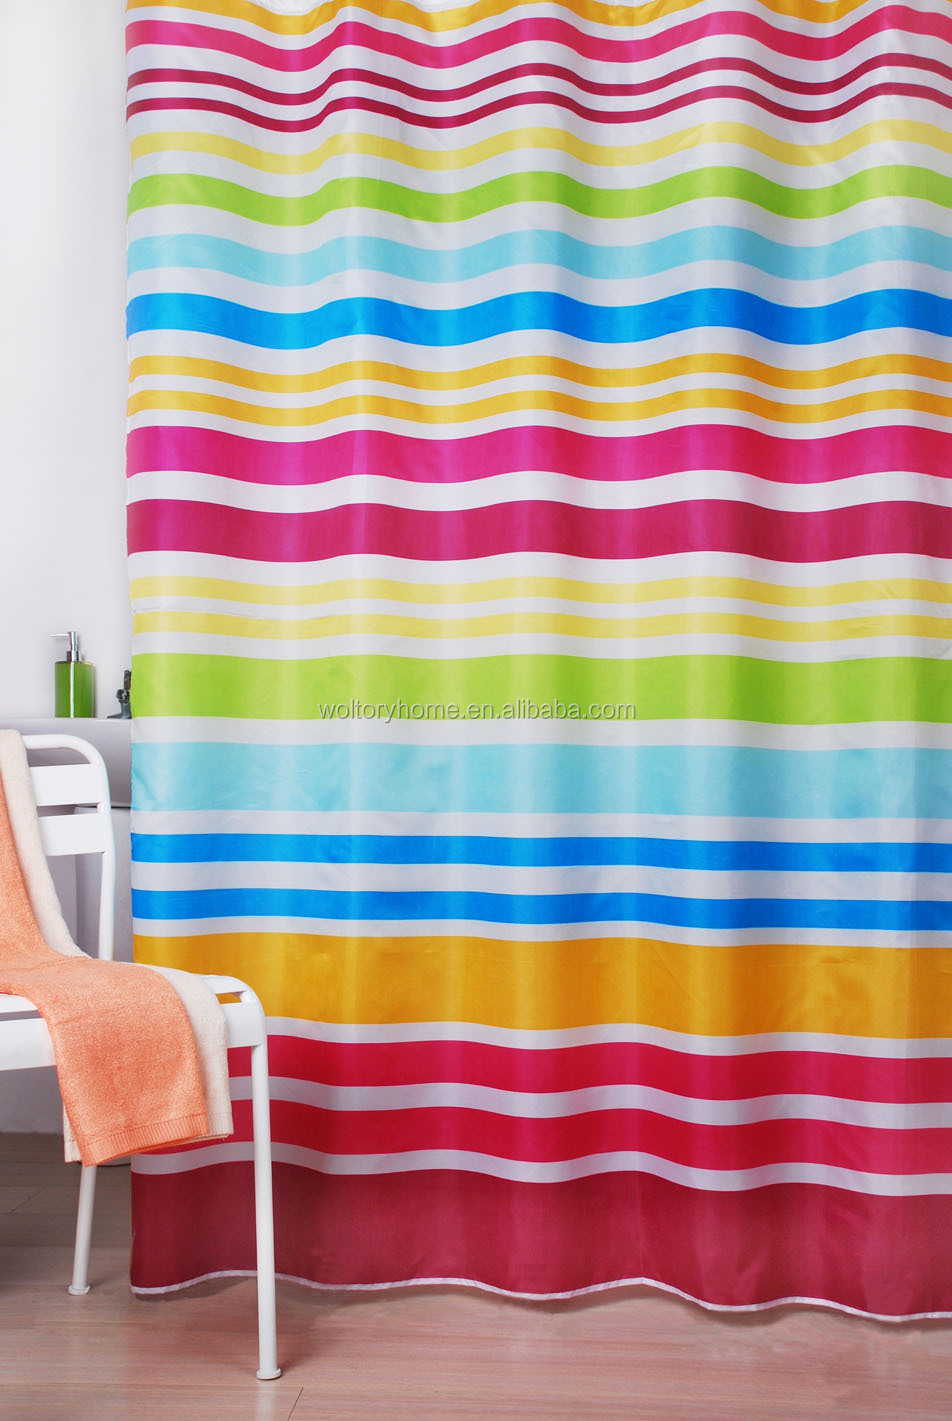 Water repellent Colorful Rainbow textile thick durable shower curtain